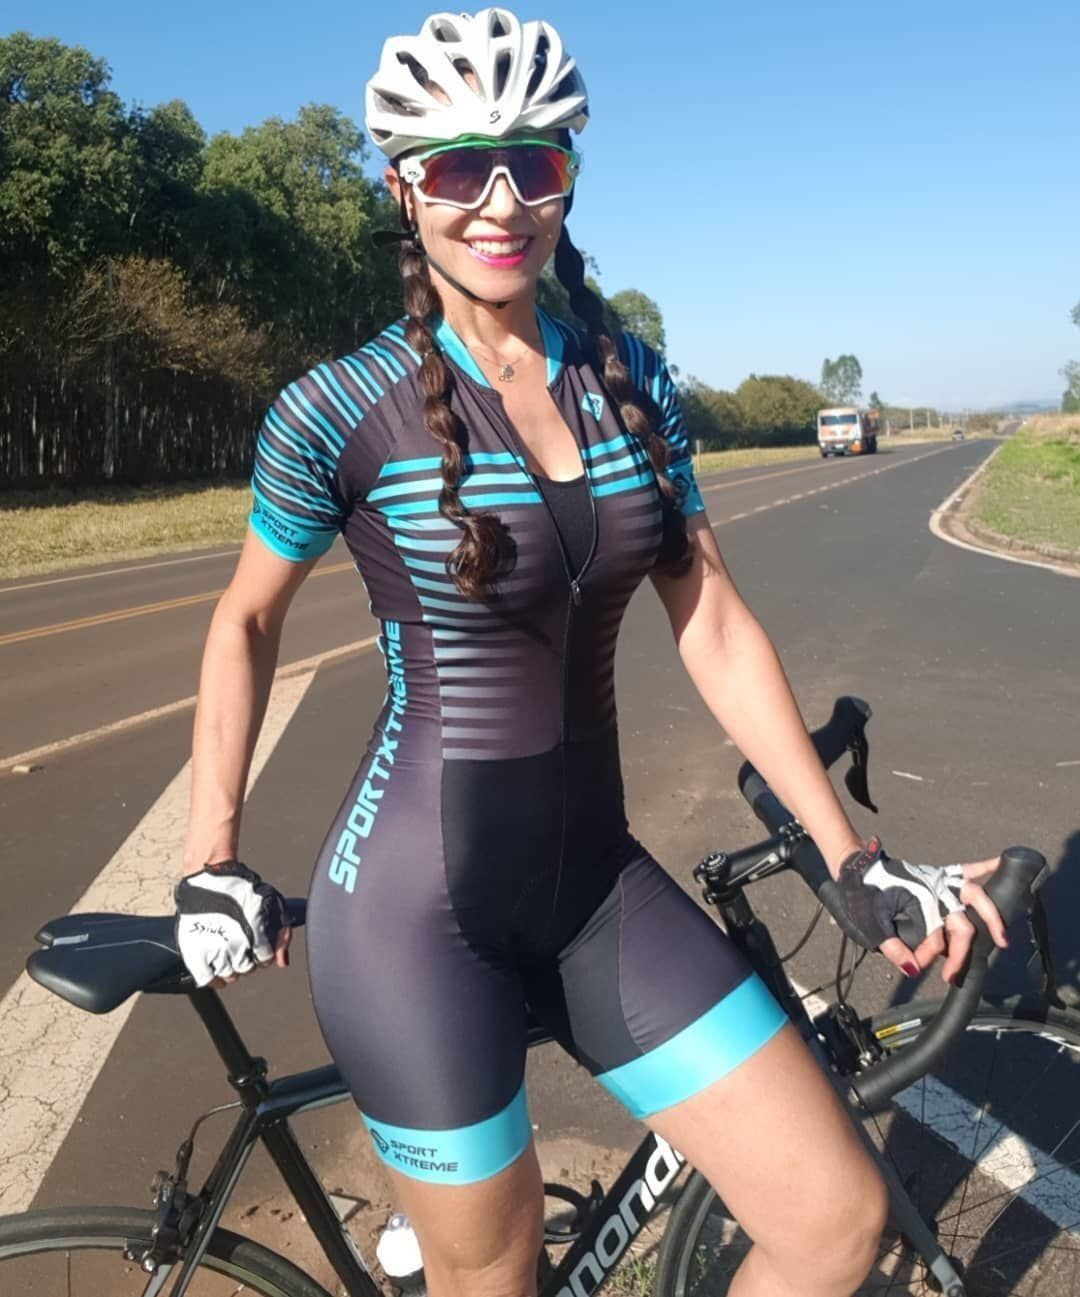 Curves And Lines Women And Bikes Cycling Women Cycle Chic Cycling Fashion